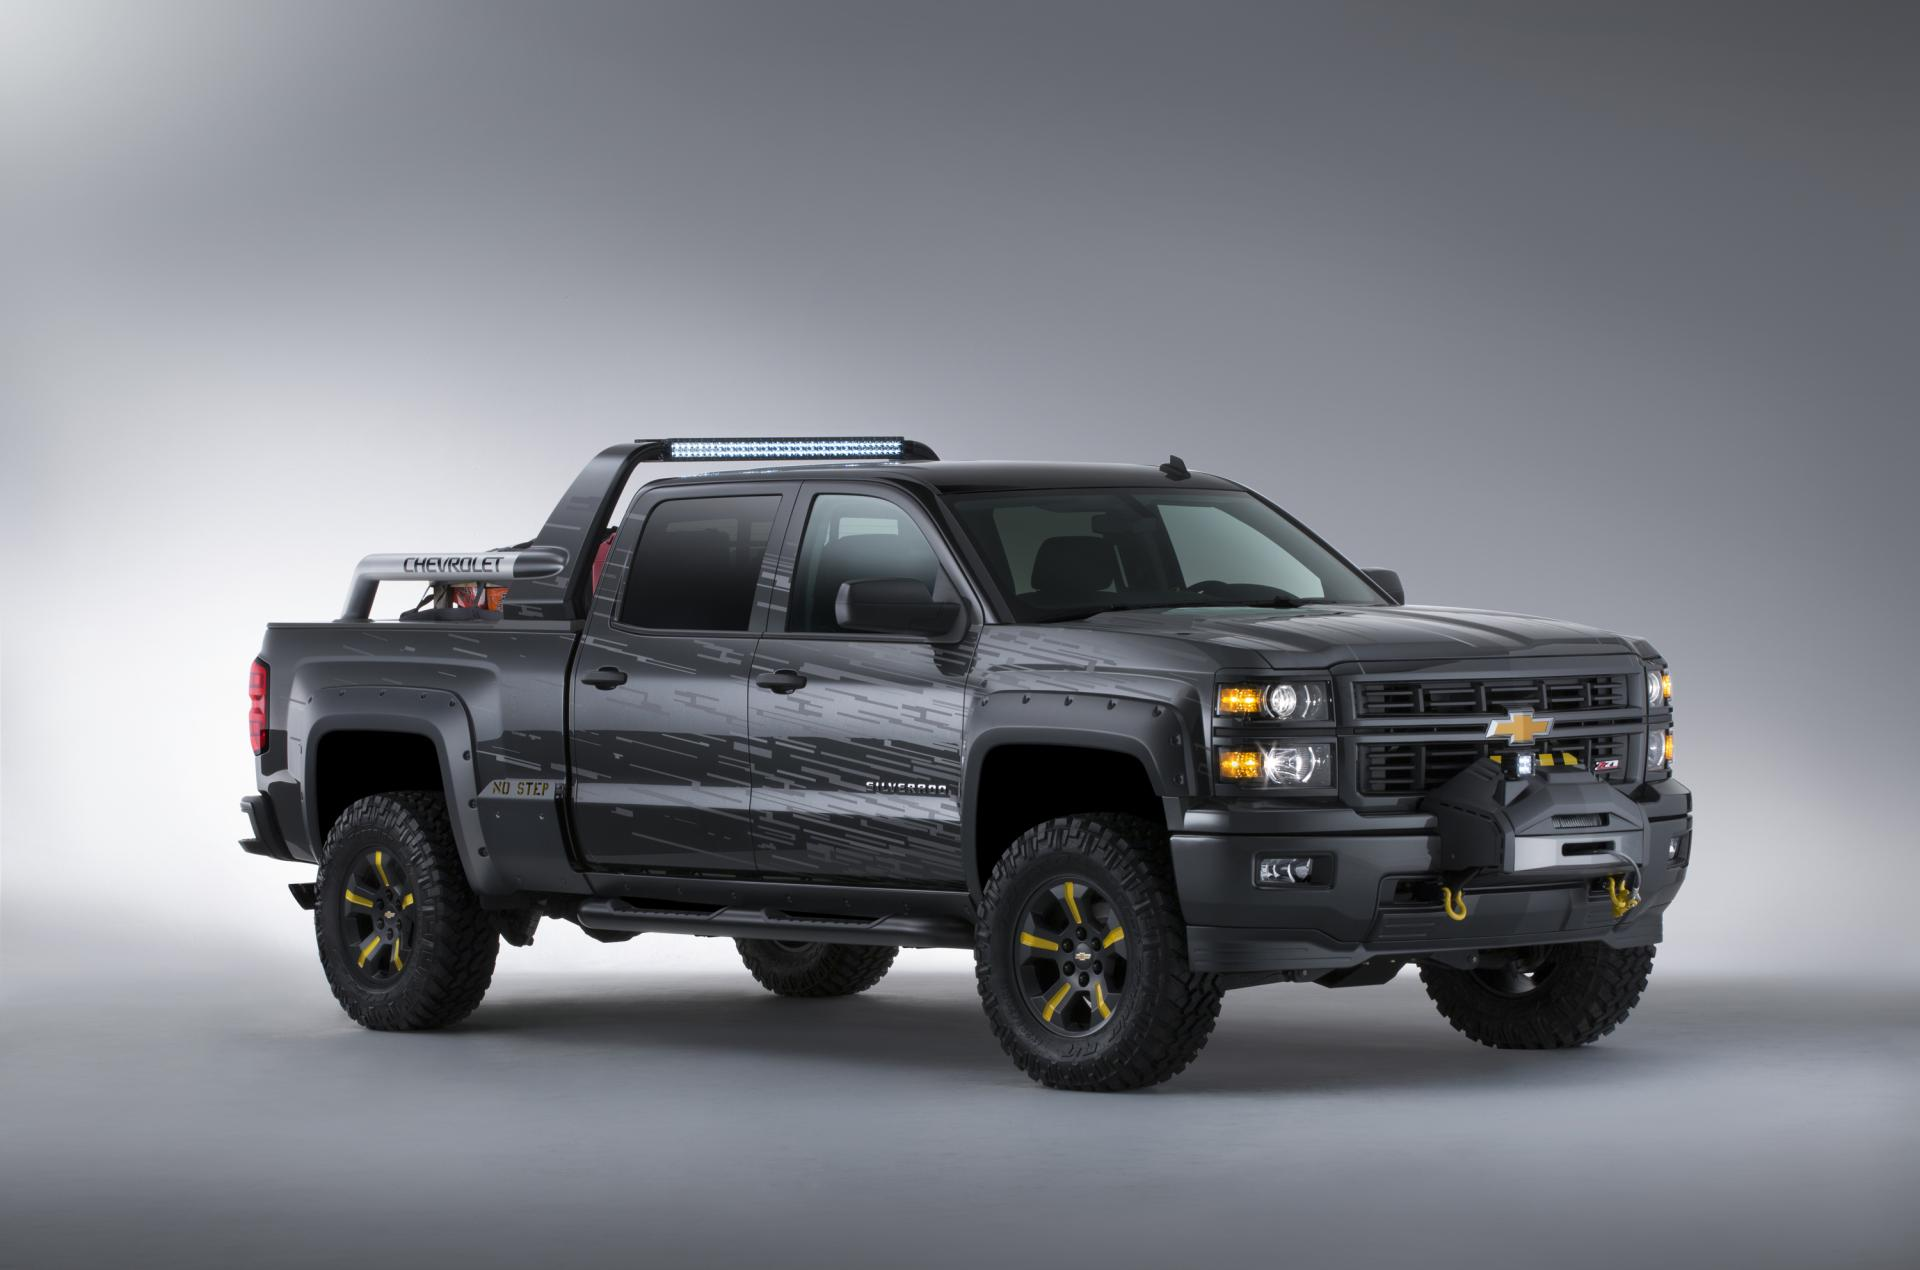 Silverado Special Ops Price >> 2014 Chevrolet Silverado Black Ops Concept News and Information, Research, and History ...